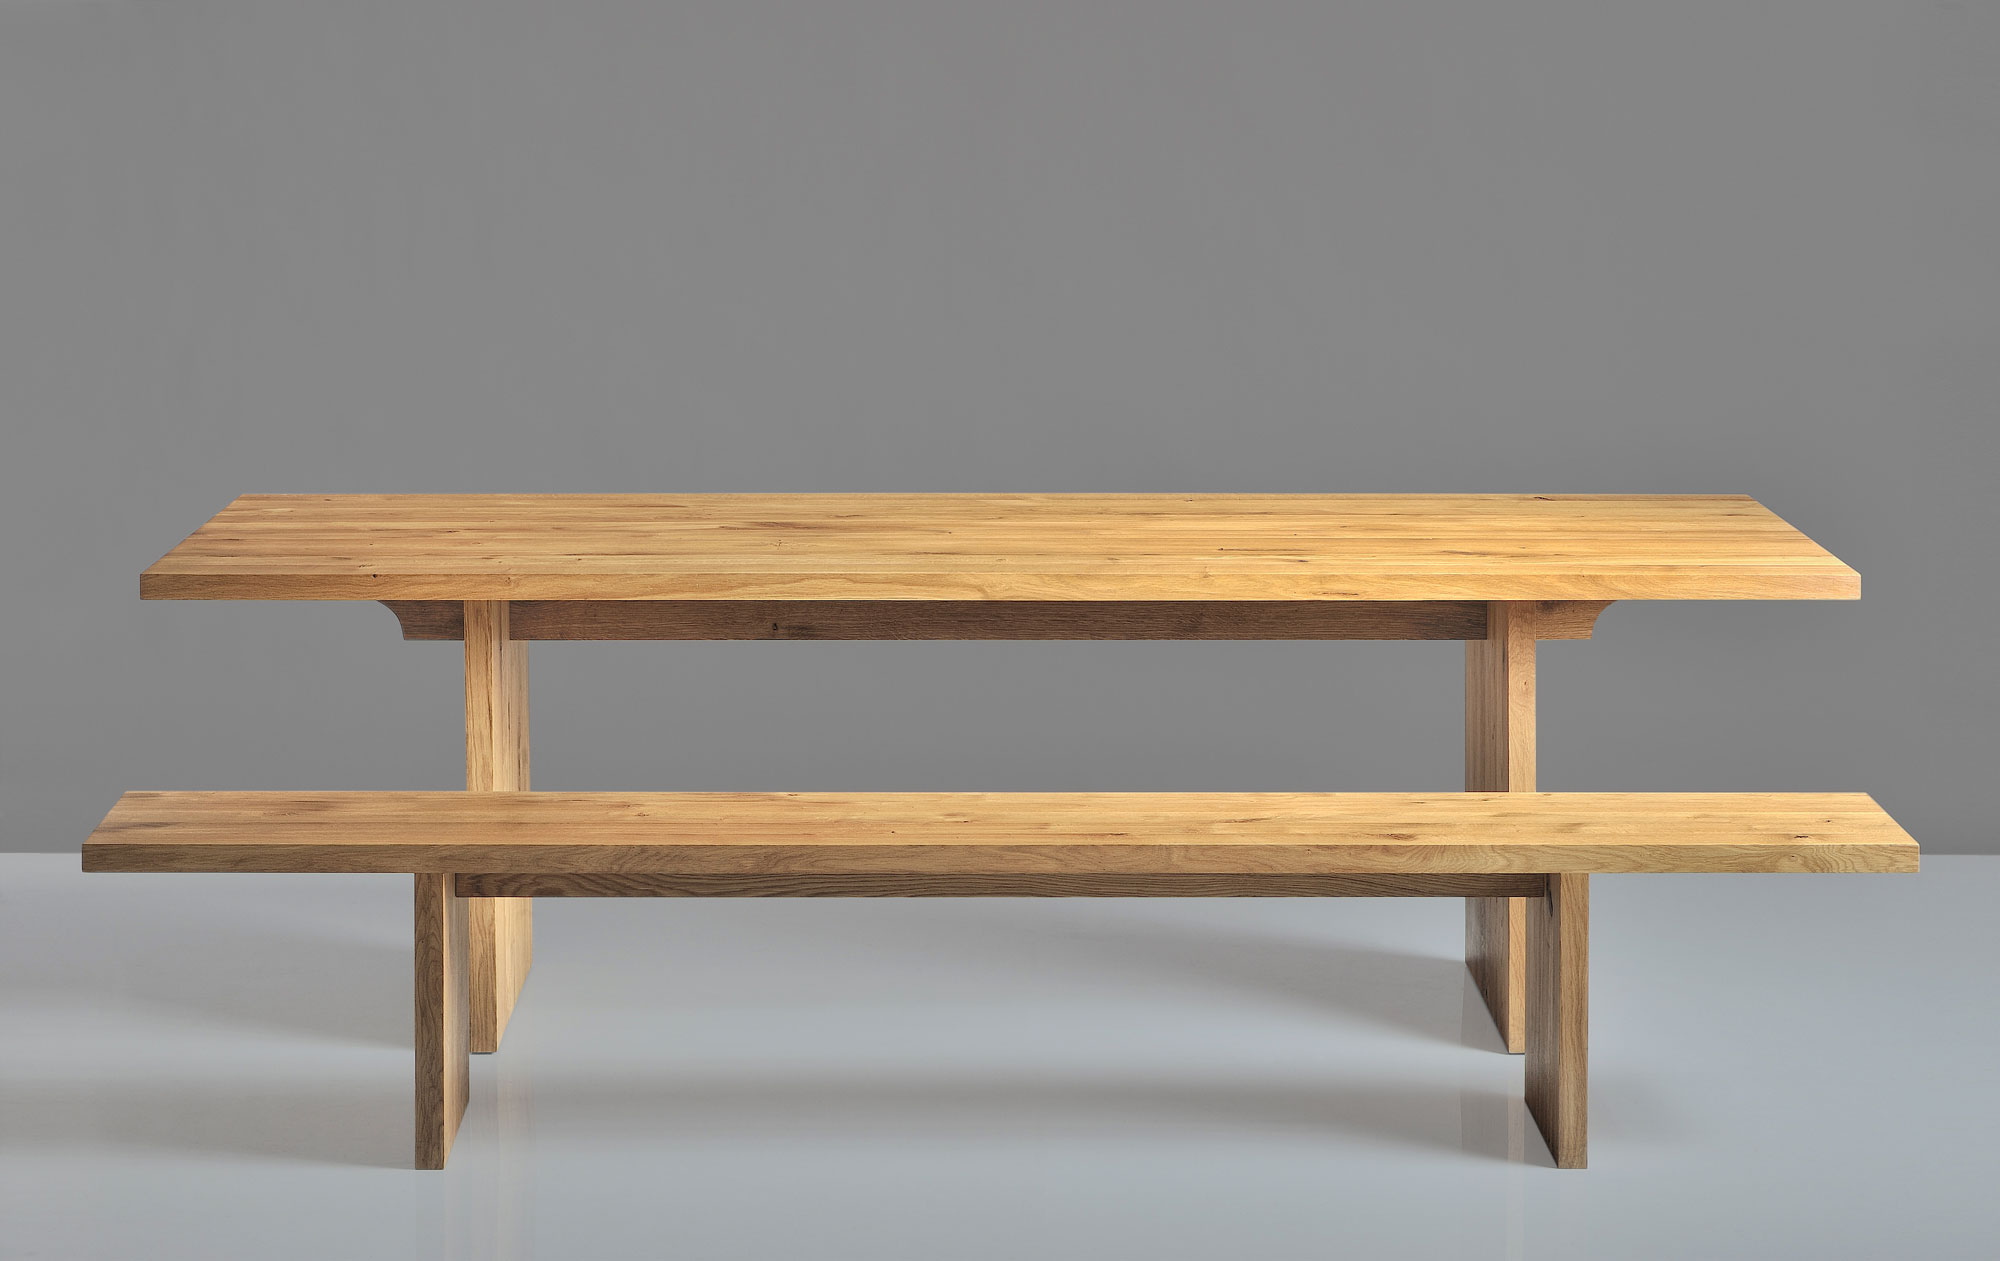 Gable Solid Wood Table SAGA 1422A custom made in solid wood by vitamin design